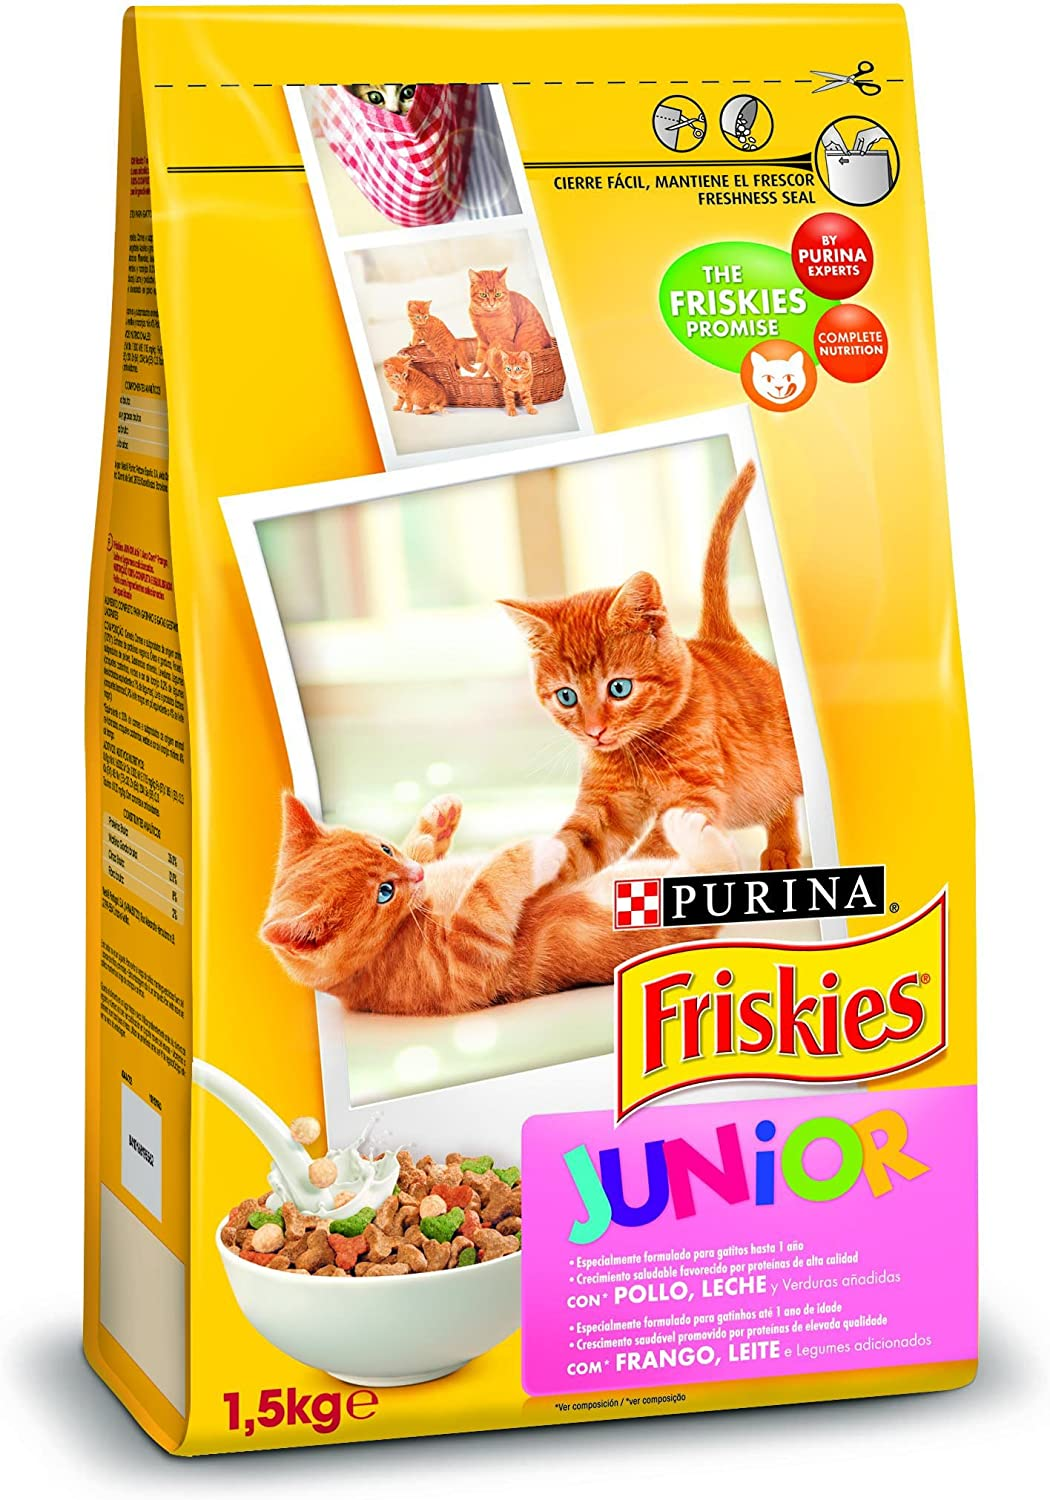 Purina Friskies Pienso para Junior Gato hasta 1 año 6 x 1,5 Kg: Amazon.es: Productos para mascotas